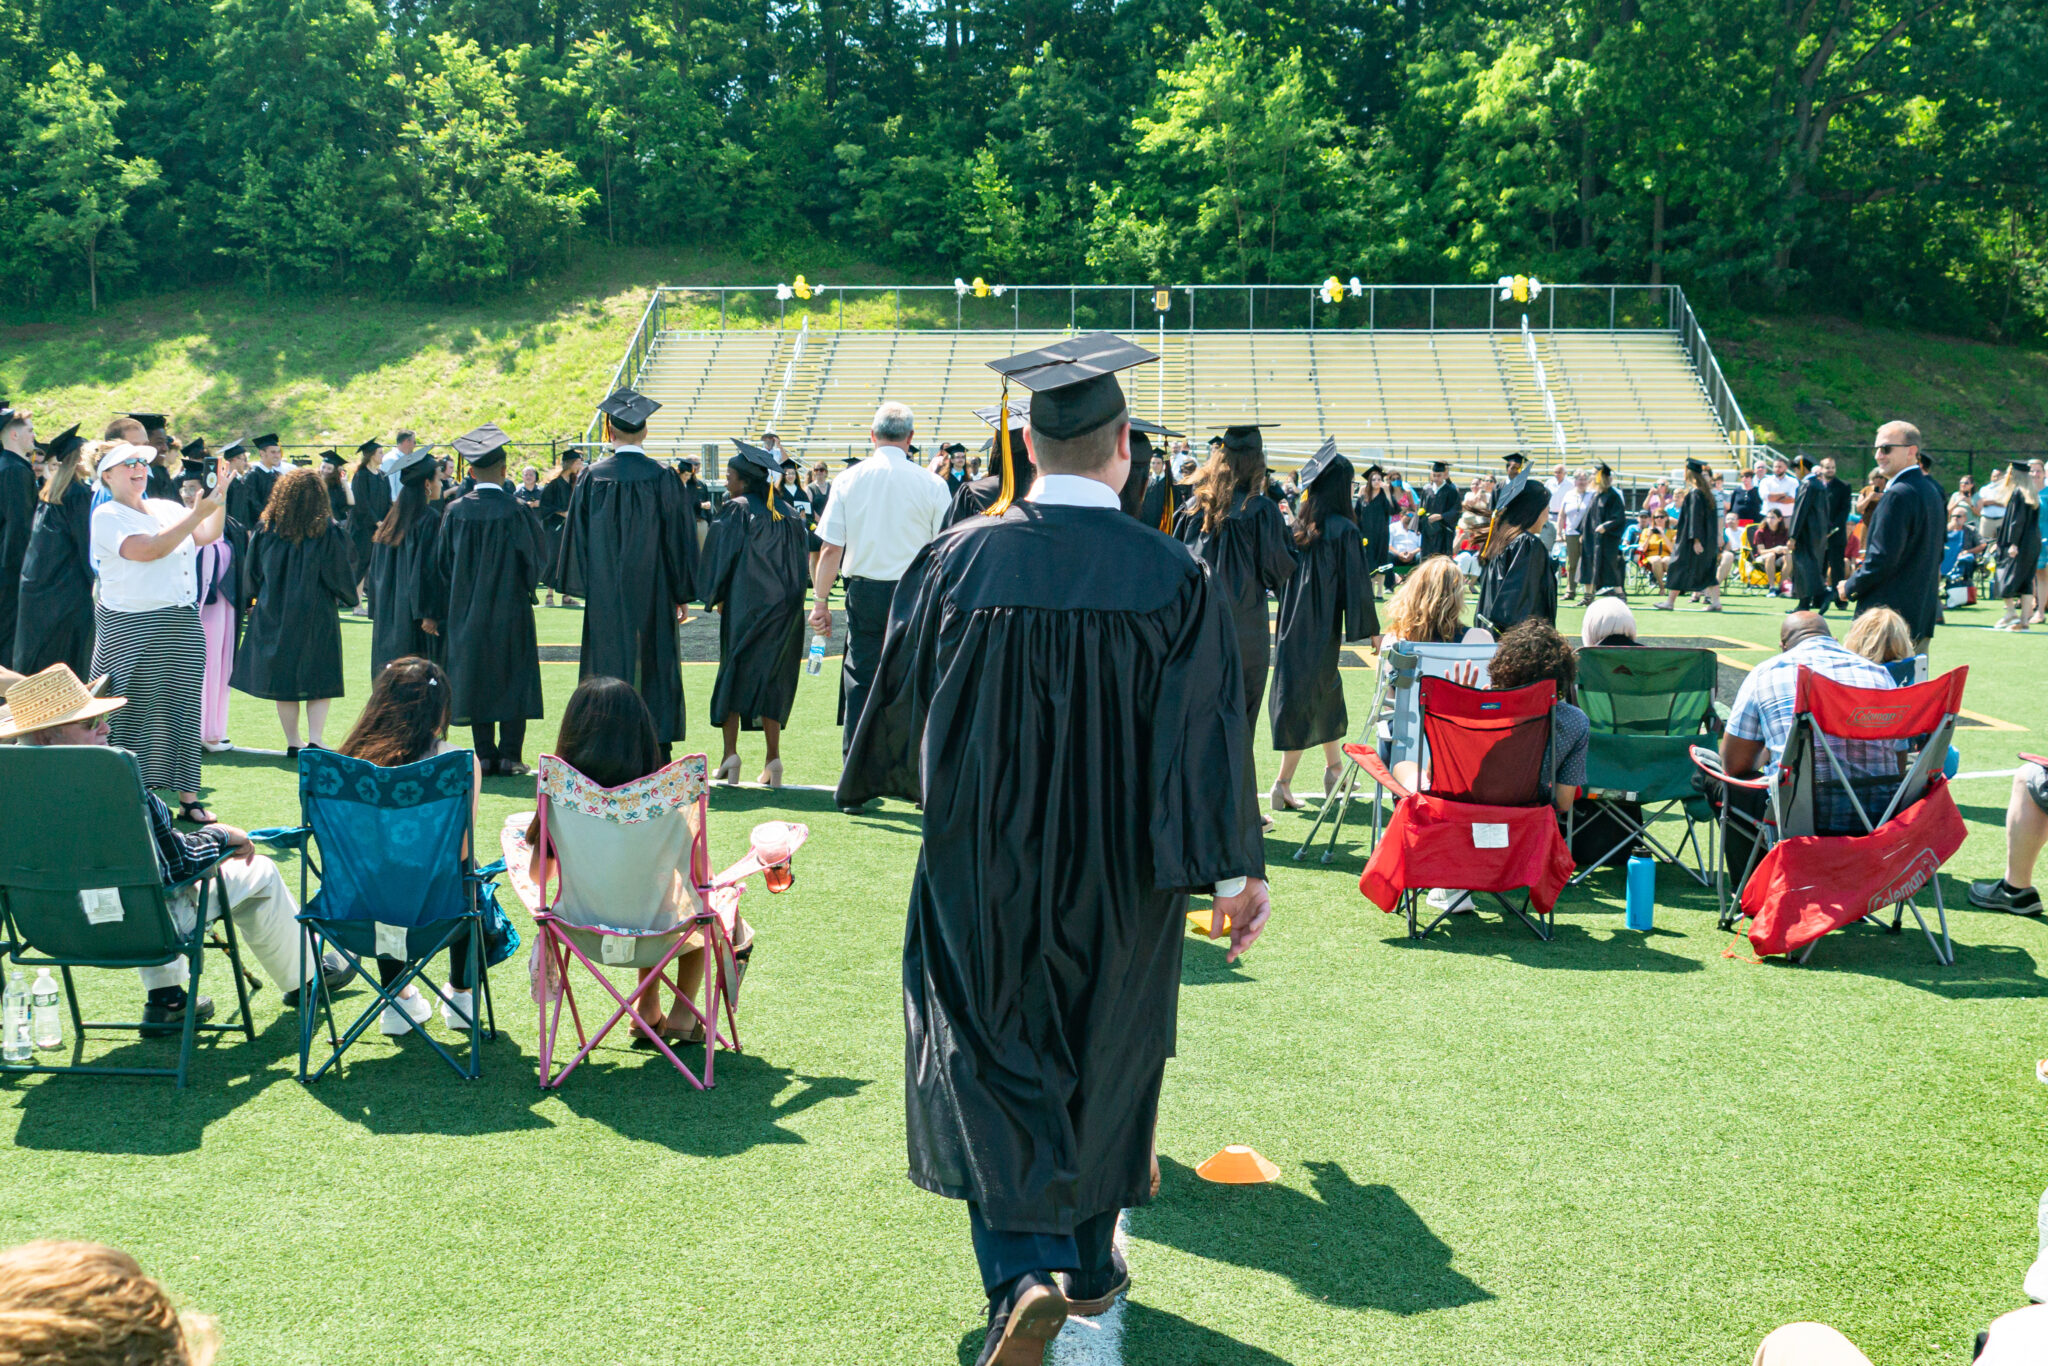 graduates and families celebrate after commencement service